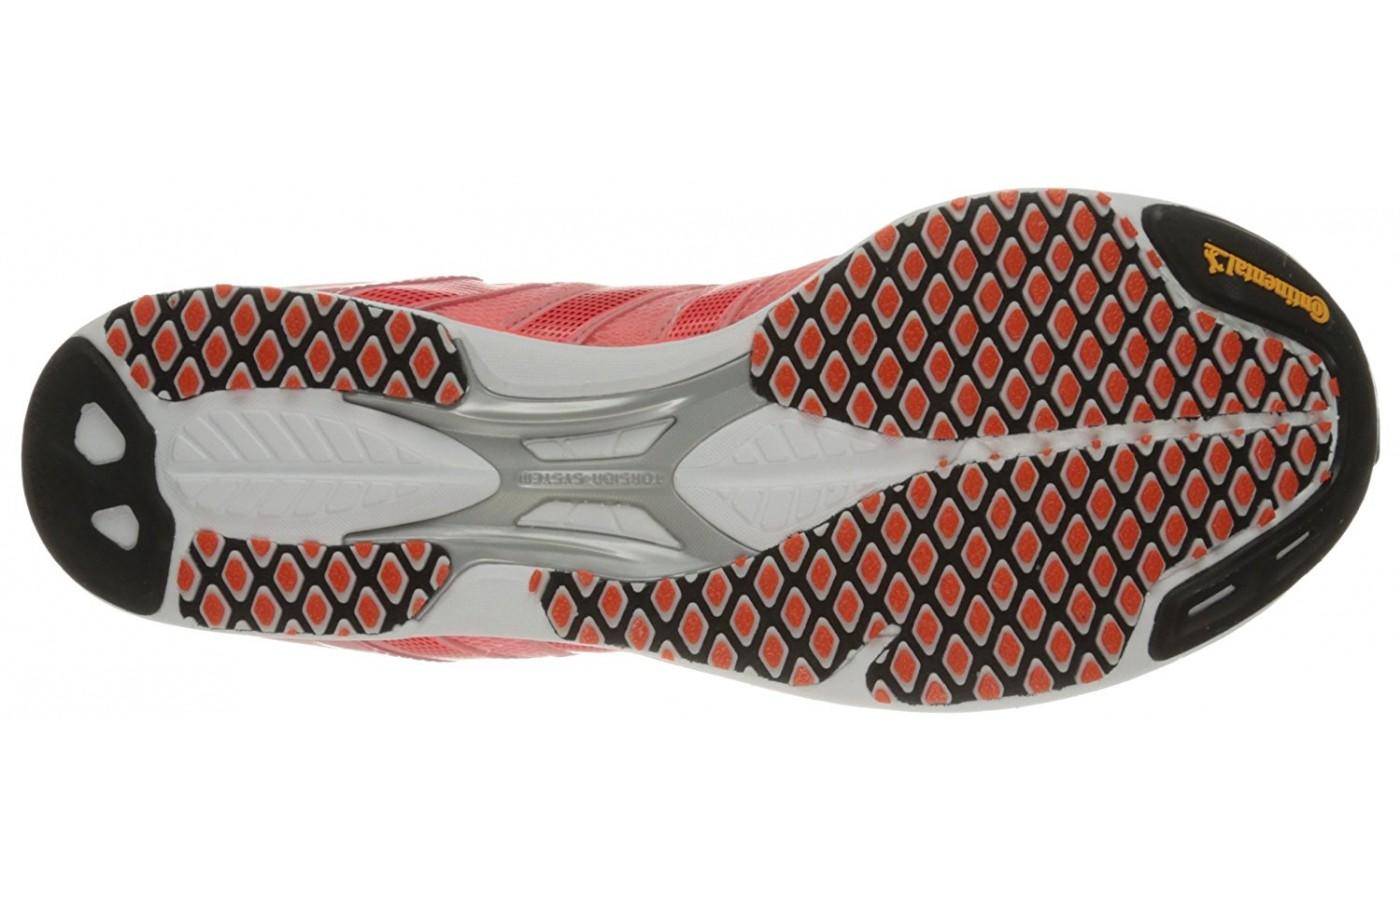 Although made for the road, the unique diamond shape of the outsole gives these racing shoes great grip